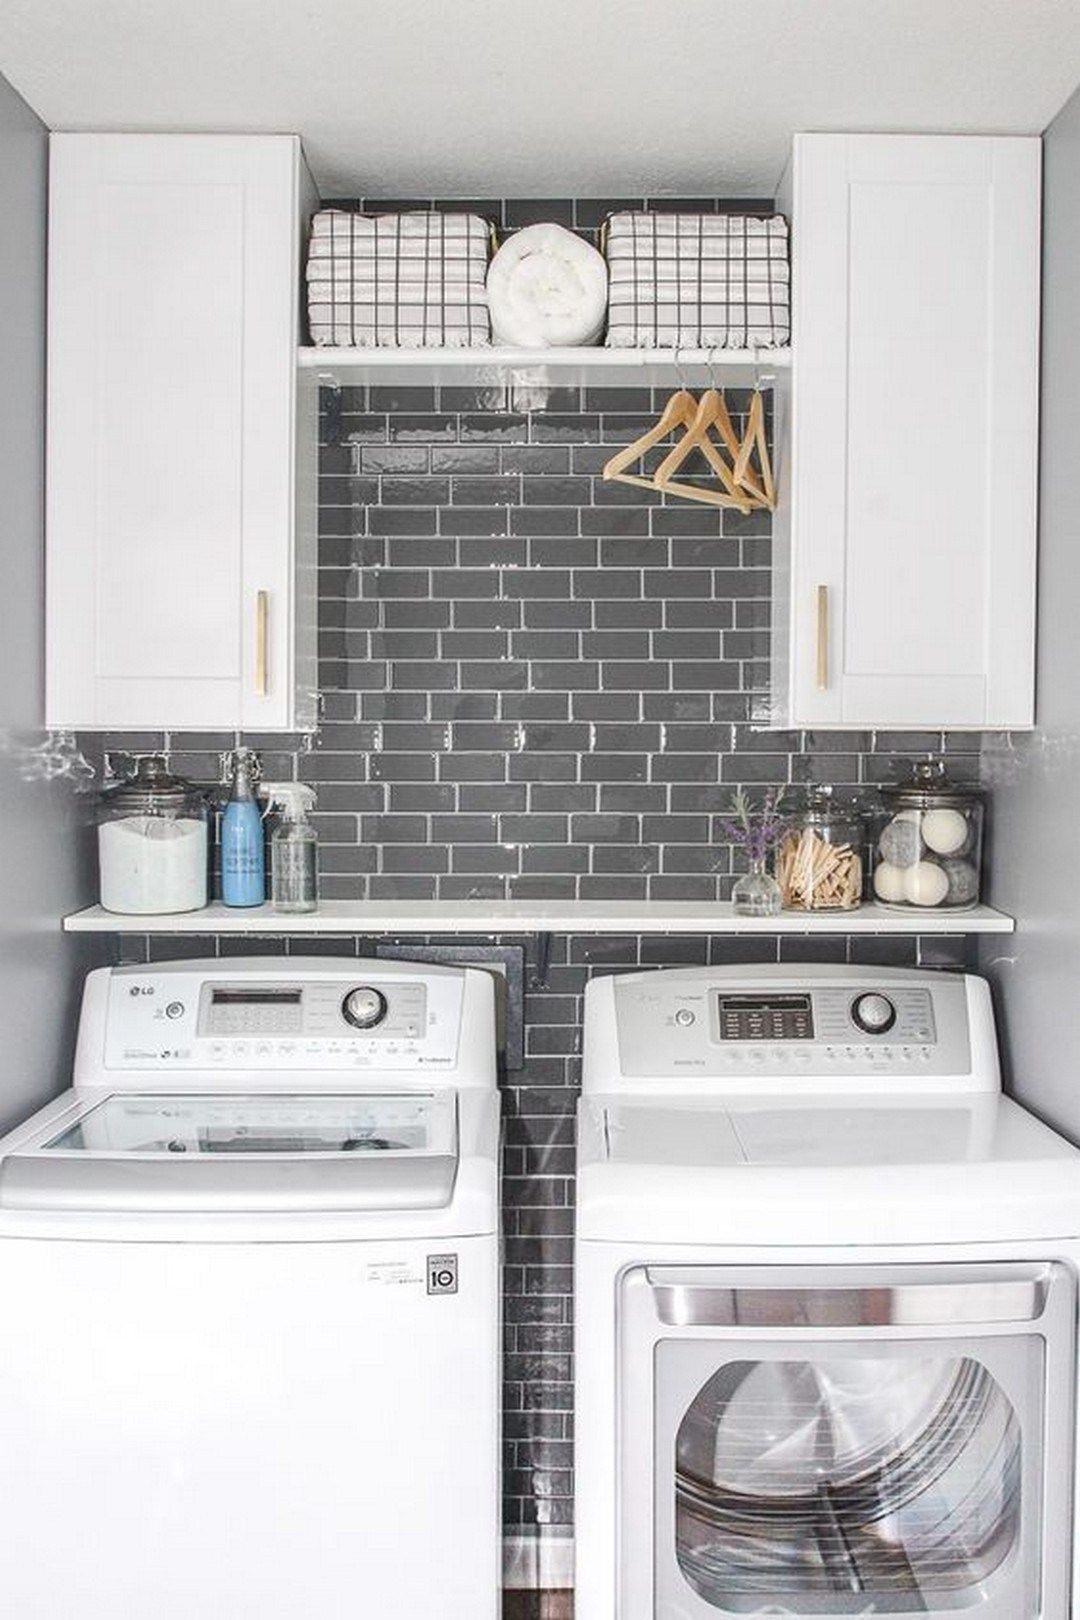 29 Small Space Laundry Room Ideas Small Laundry Room Makeover